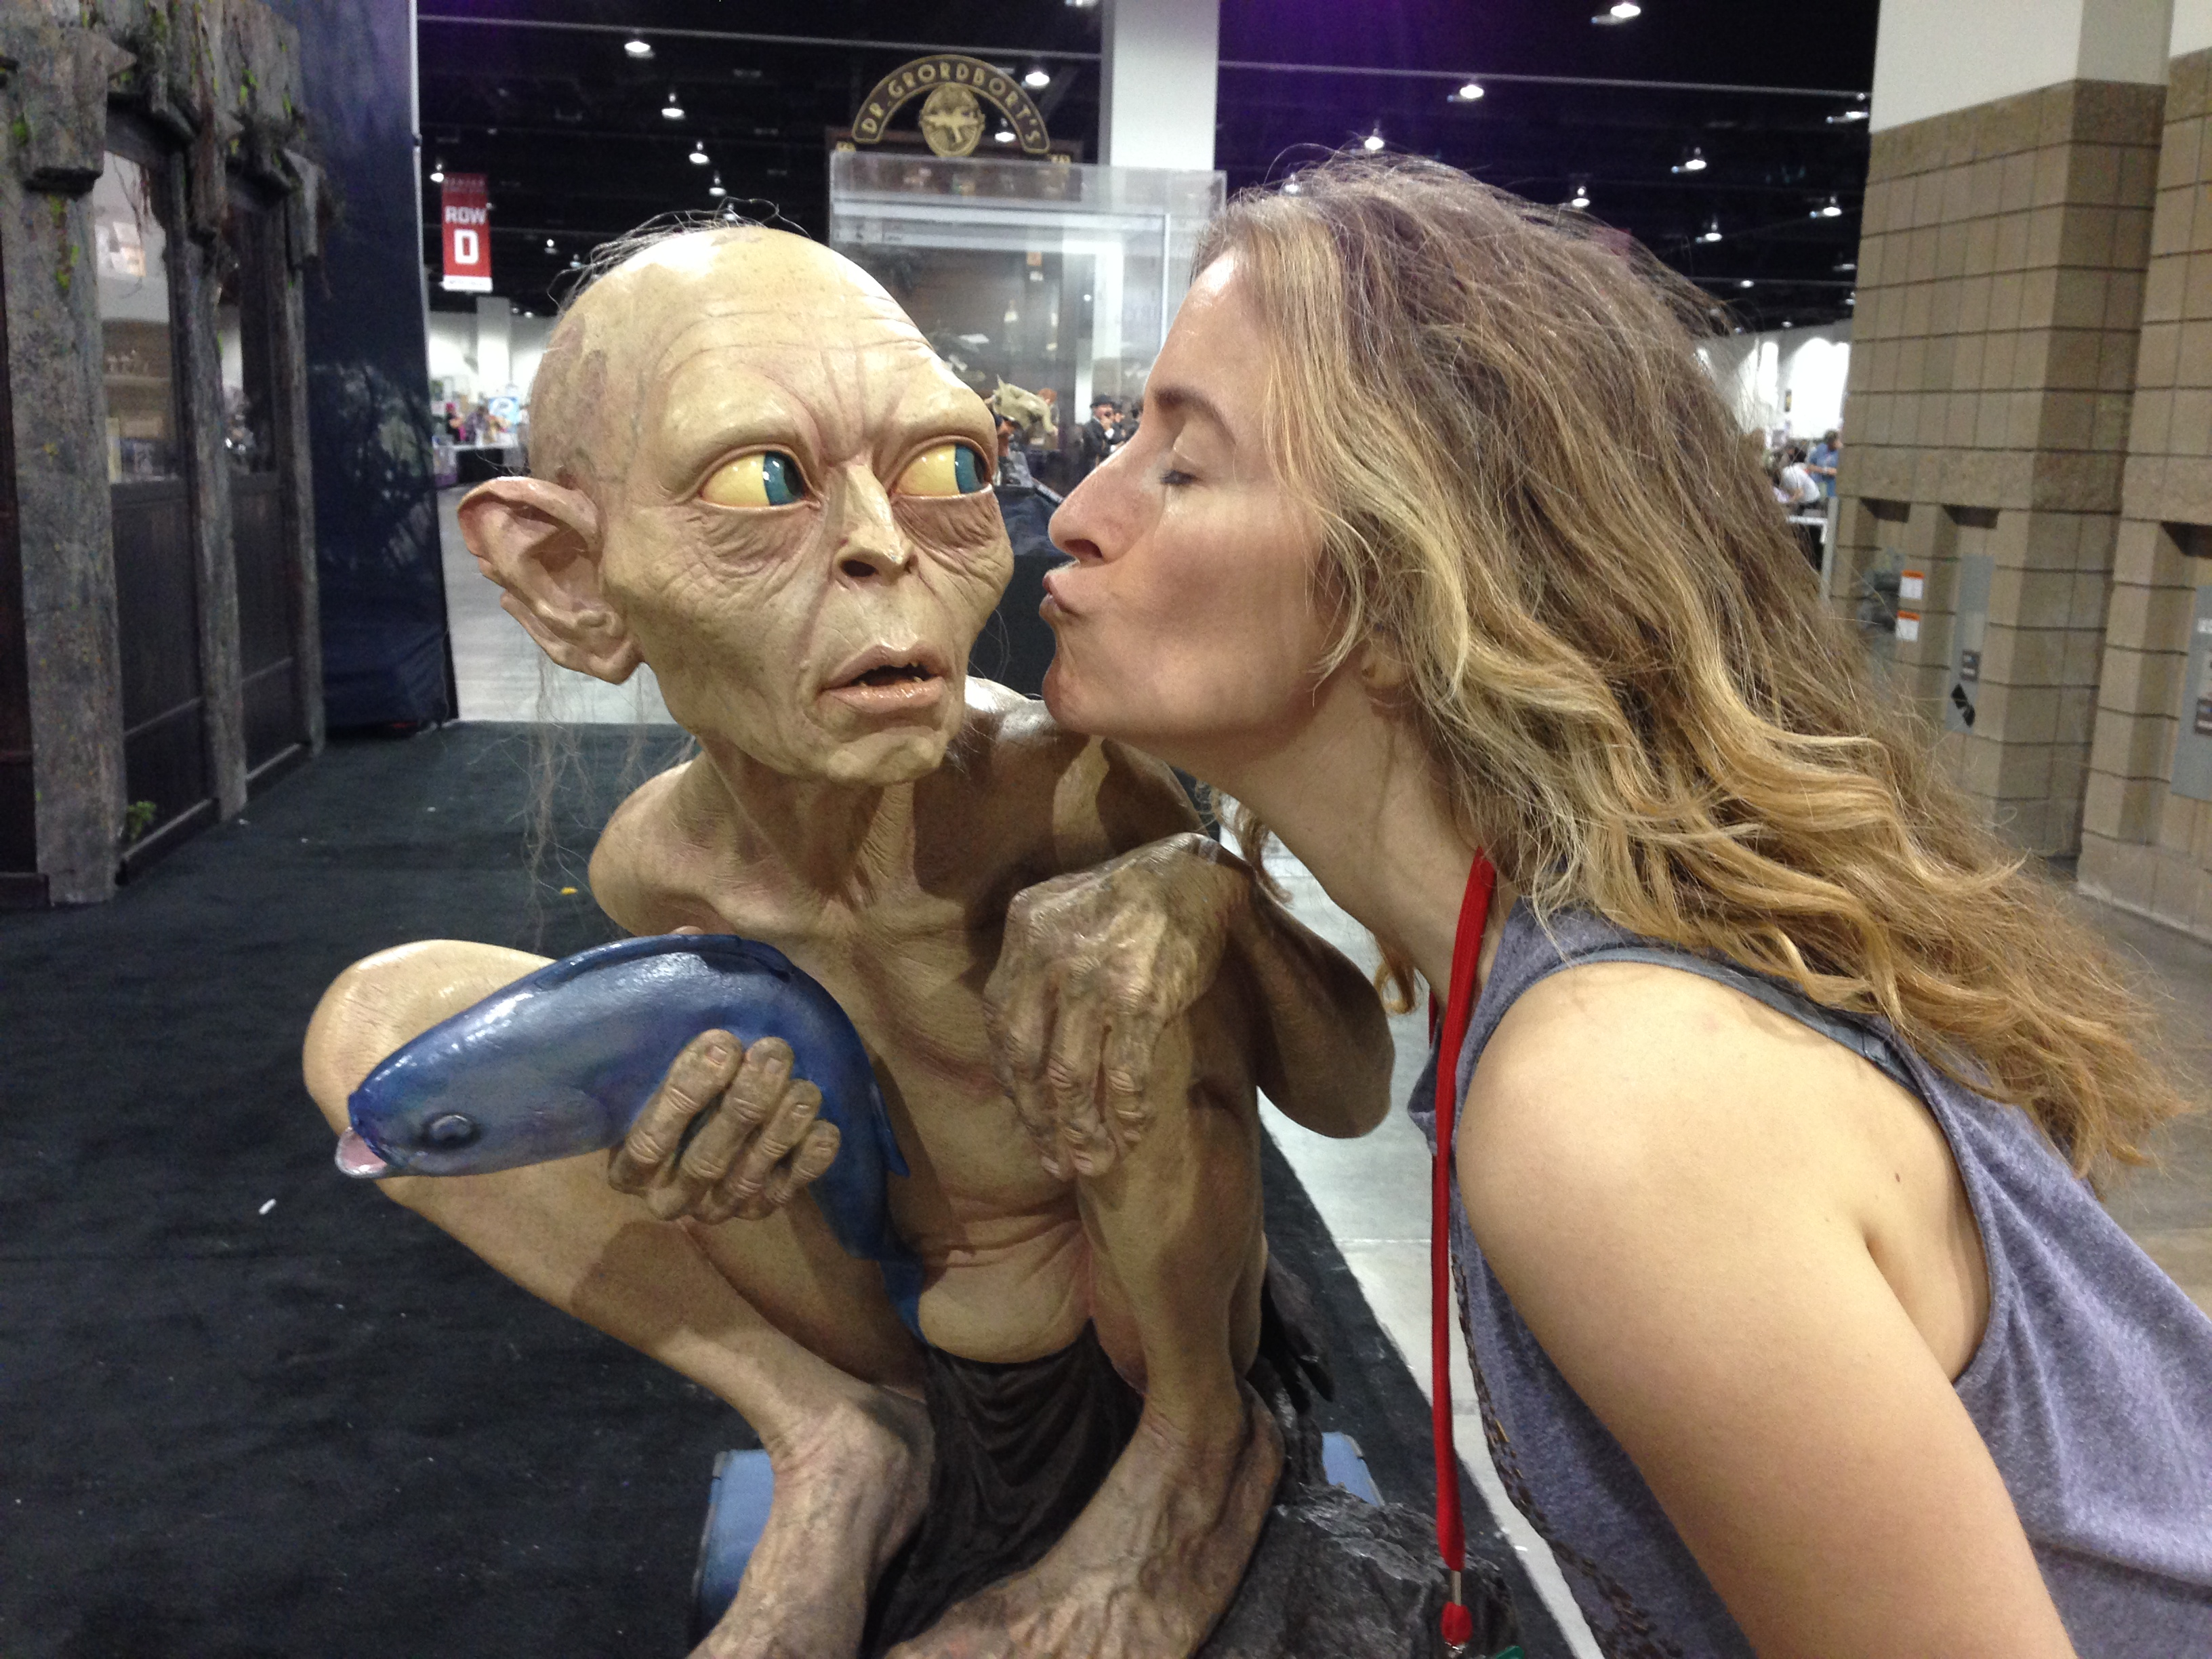 A kiss for Smeagol